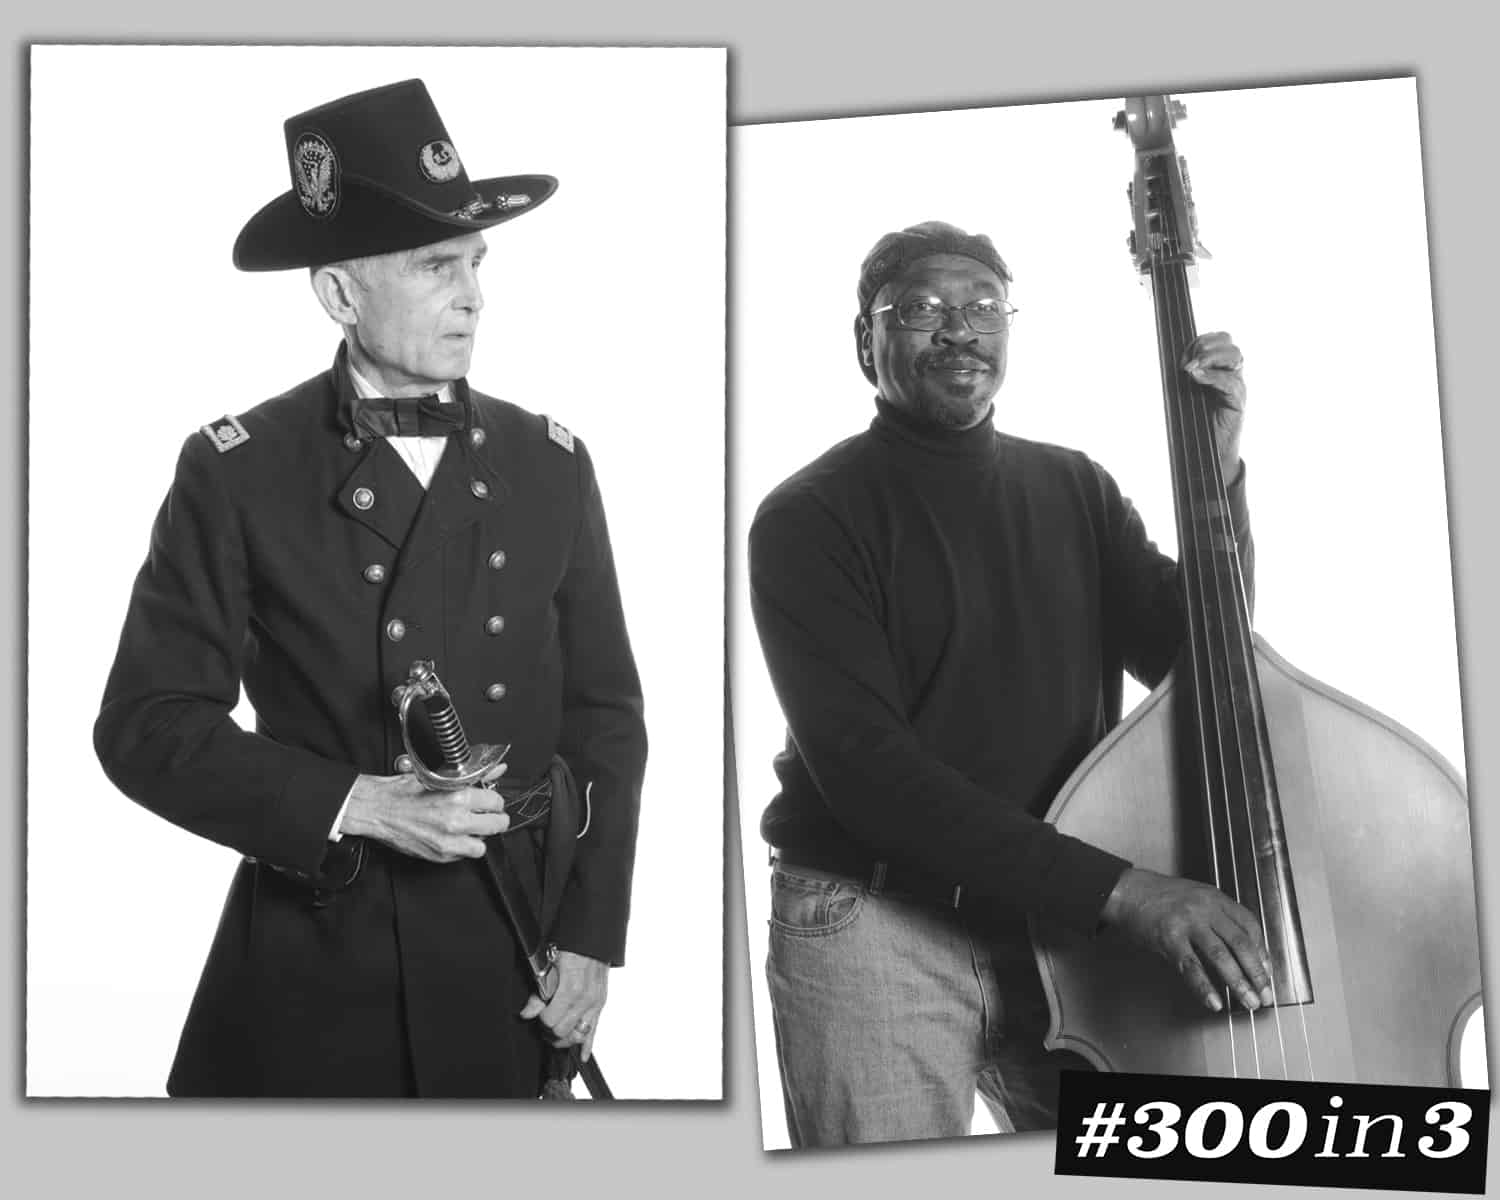 ONE by ONE Community Portrait IH soldier and bass player